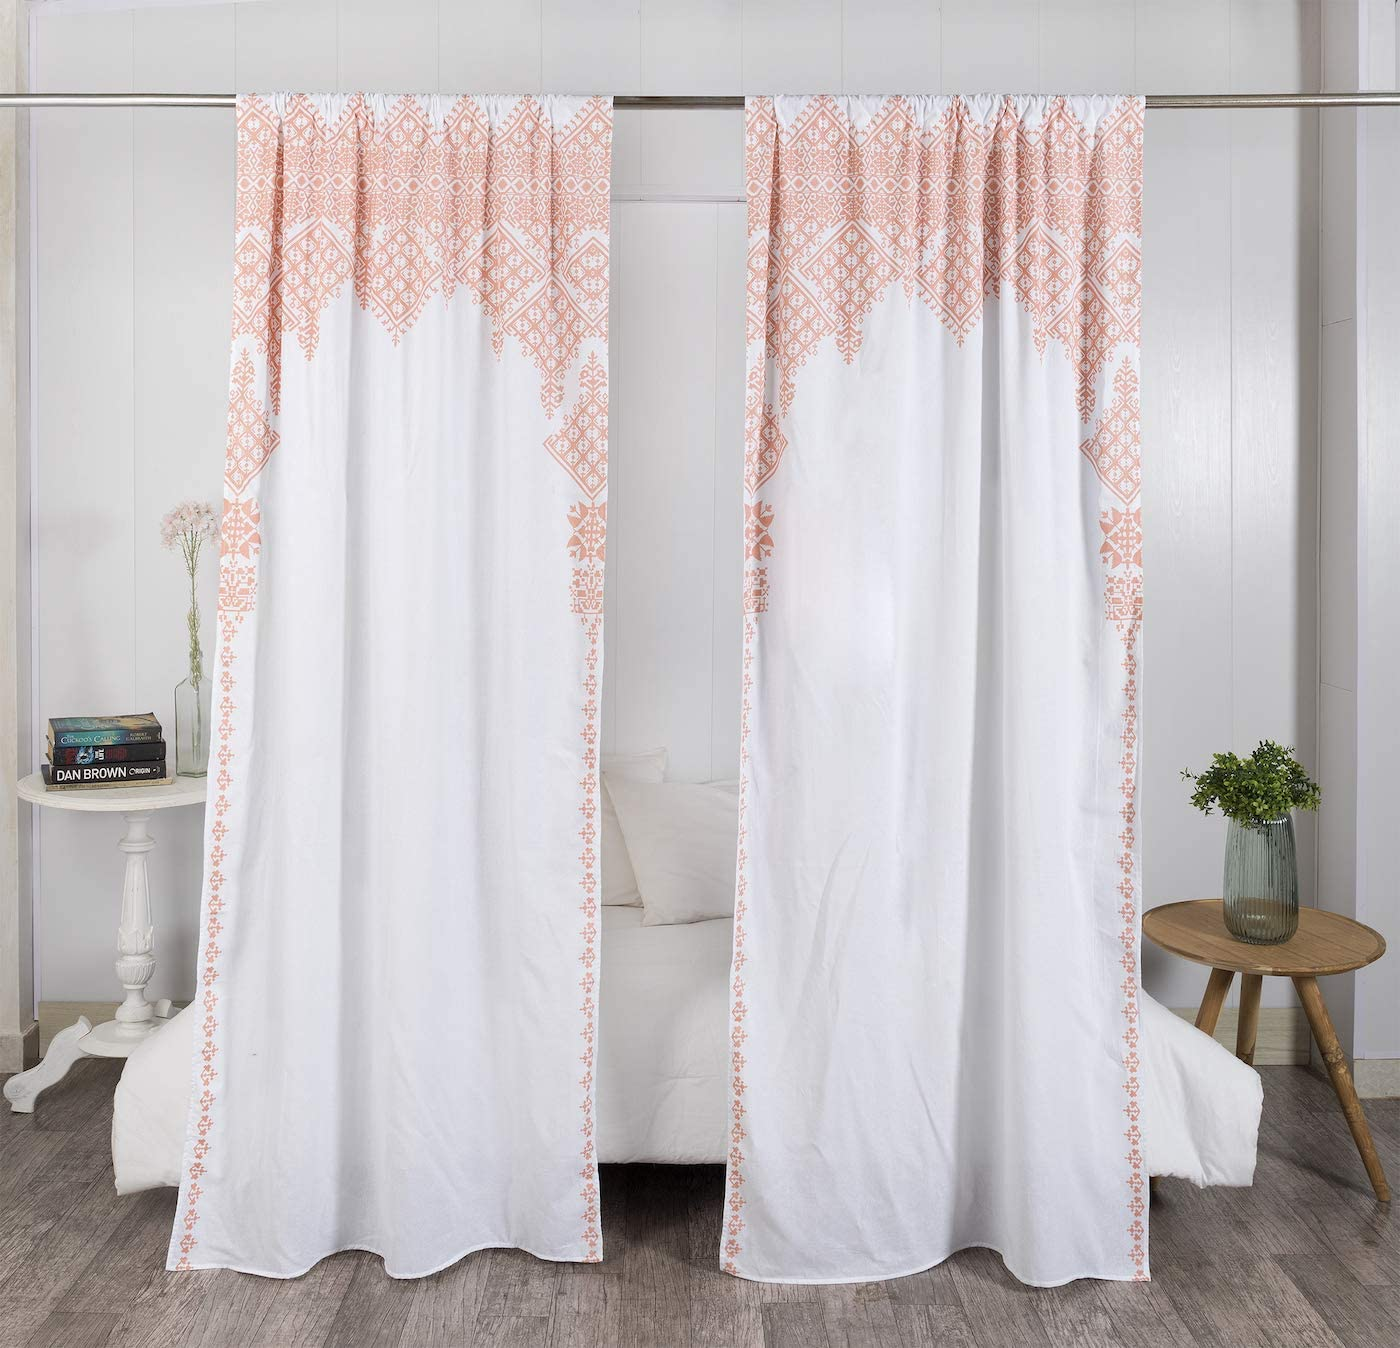 "Madhu International Set of 2 Bohemian Curtains - Handmade Cotton Indian Tapestry Curtains - Curtain Drape With Rod Pocket - Floral Printed Mandala Curtain Panel for Living Room - White Rose, 41"" X 87"""